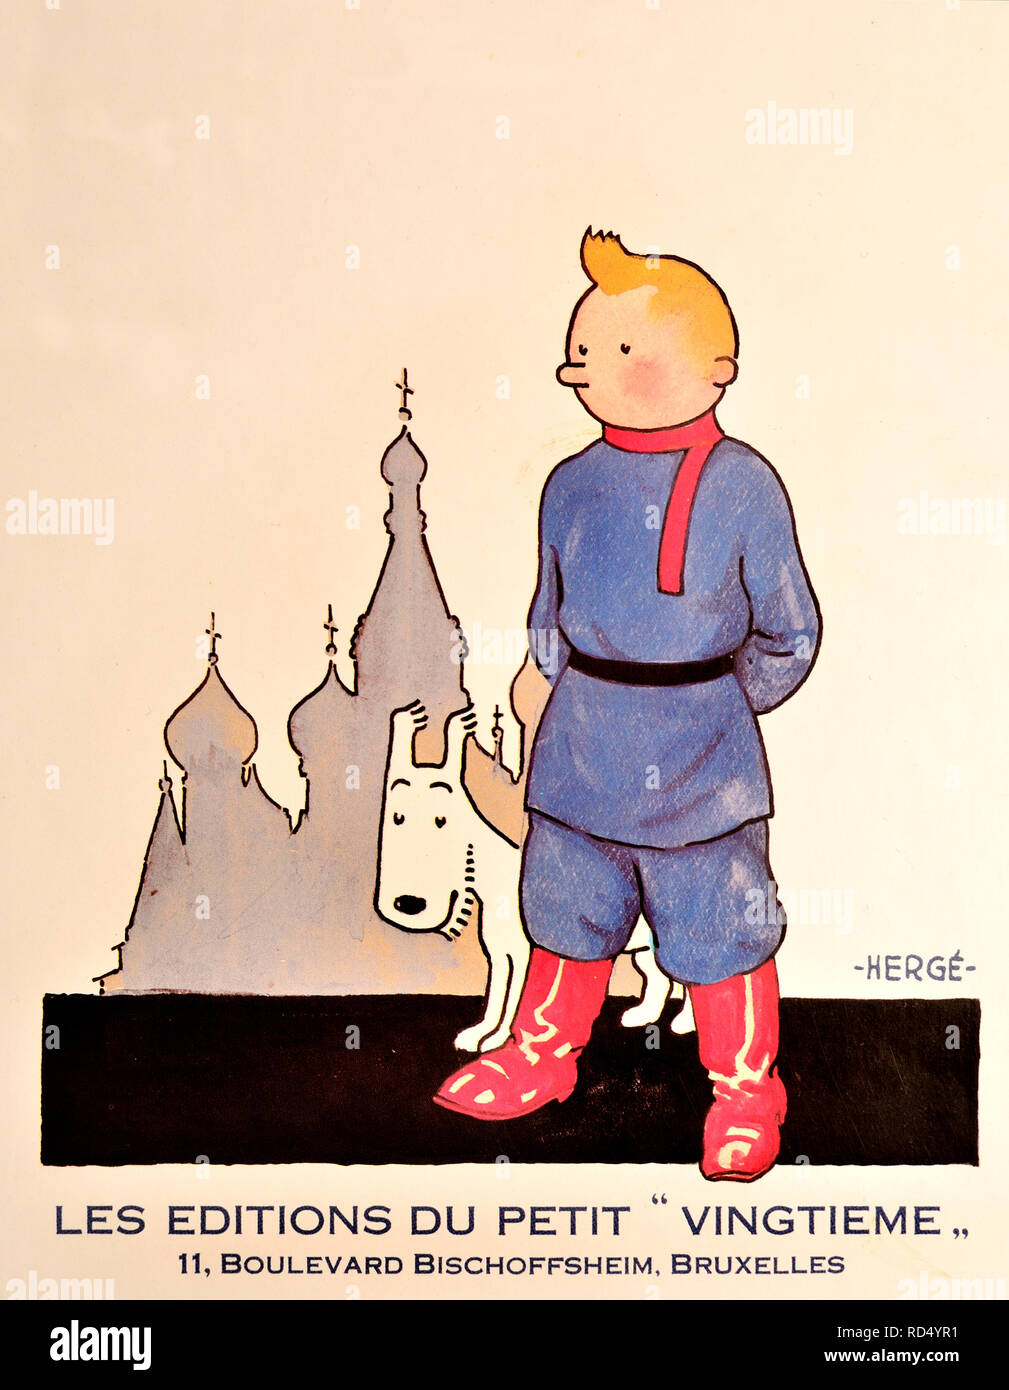 Les Aventures de Tintin au Pays des Soviets / Tintin in the Land of the Soviets (French edition) The first Tintin book, originally published 1930 - re Stock Photo